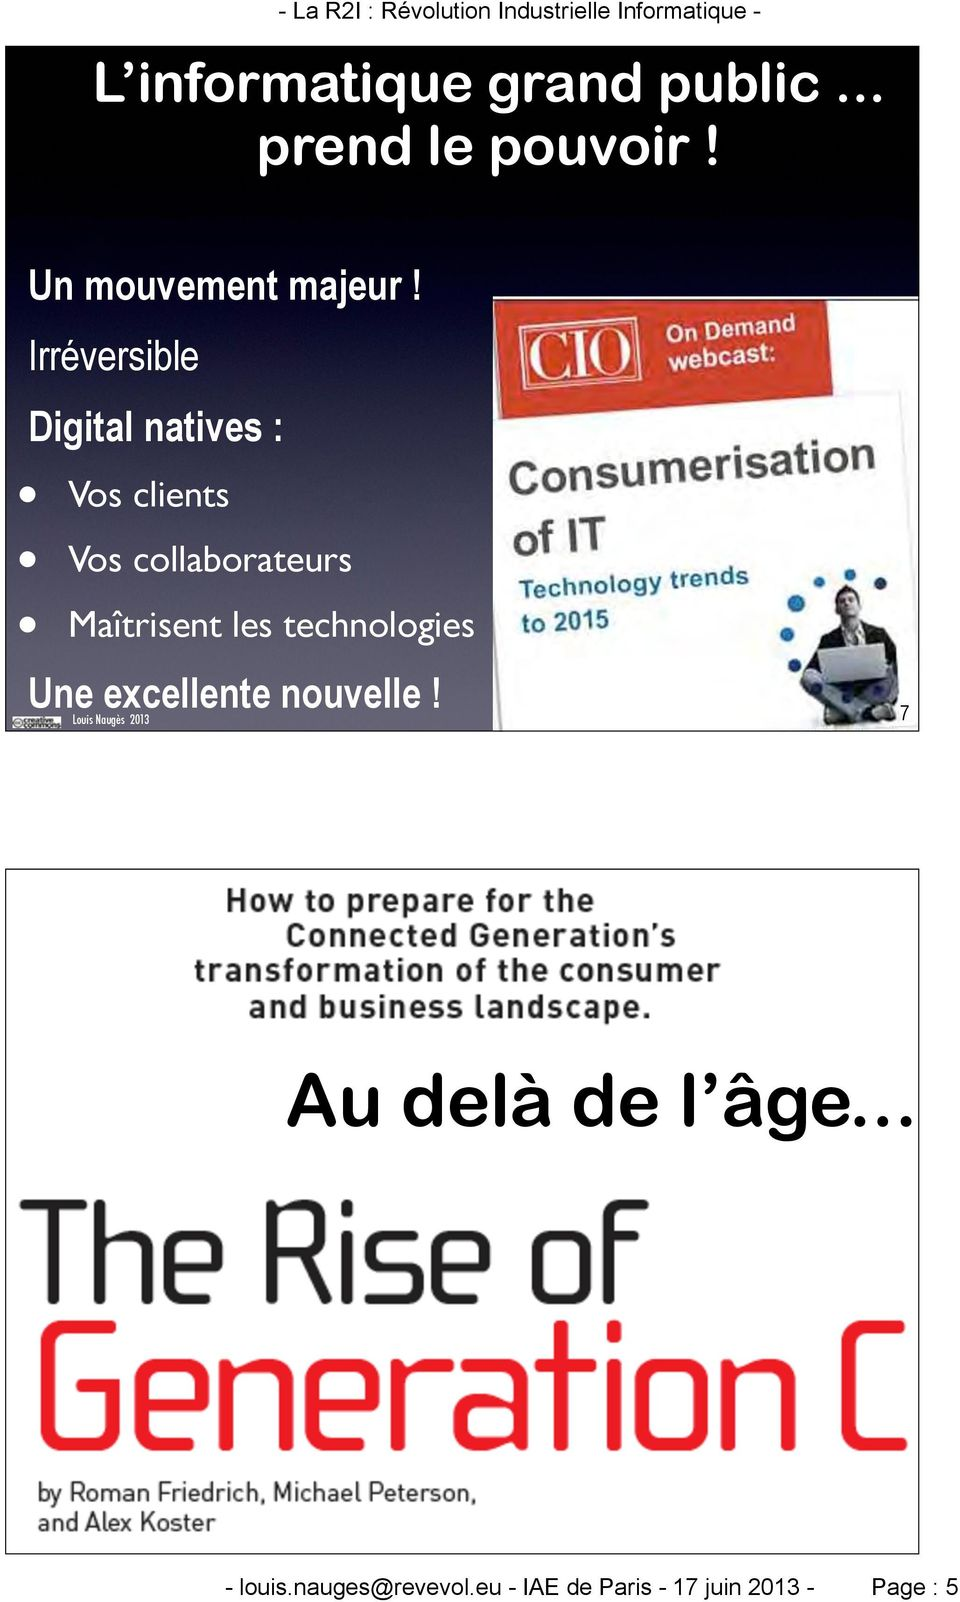 technologies - La R2I : Révolution Industrielle Informatique - Une excellente